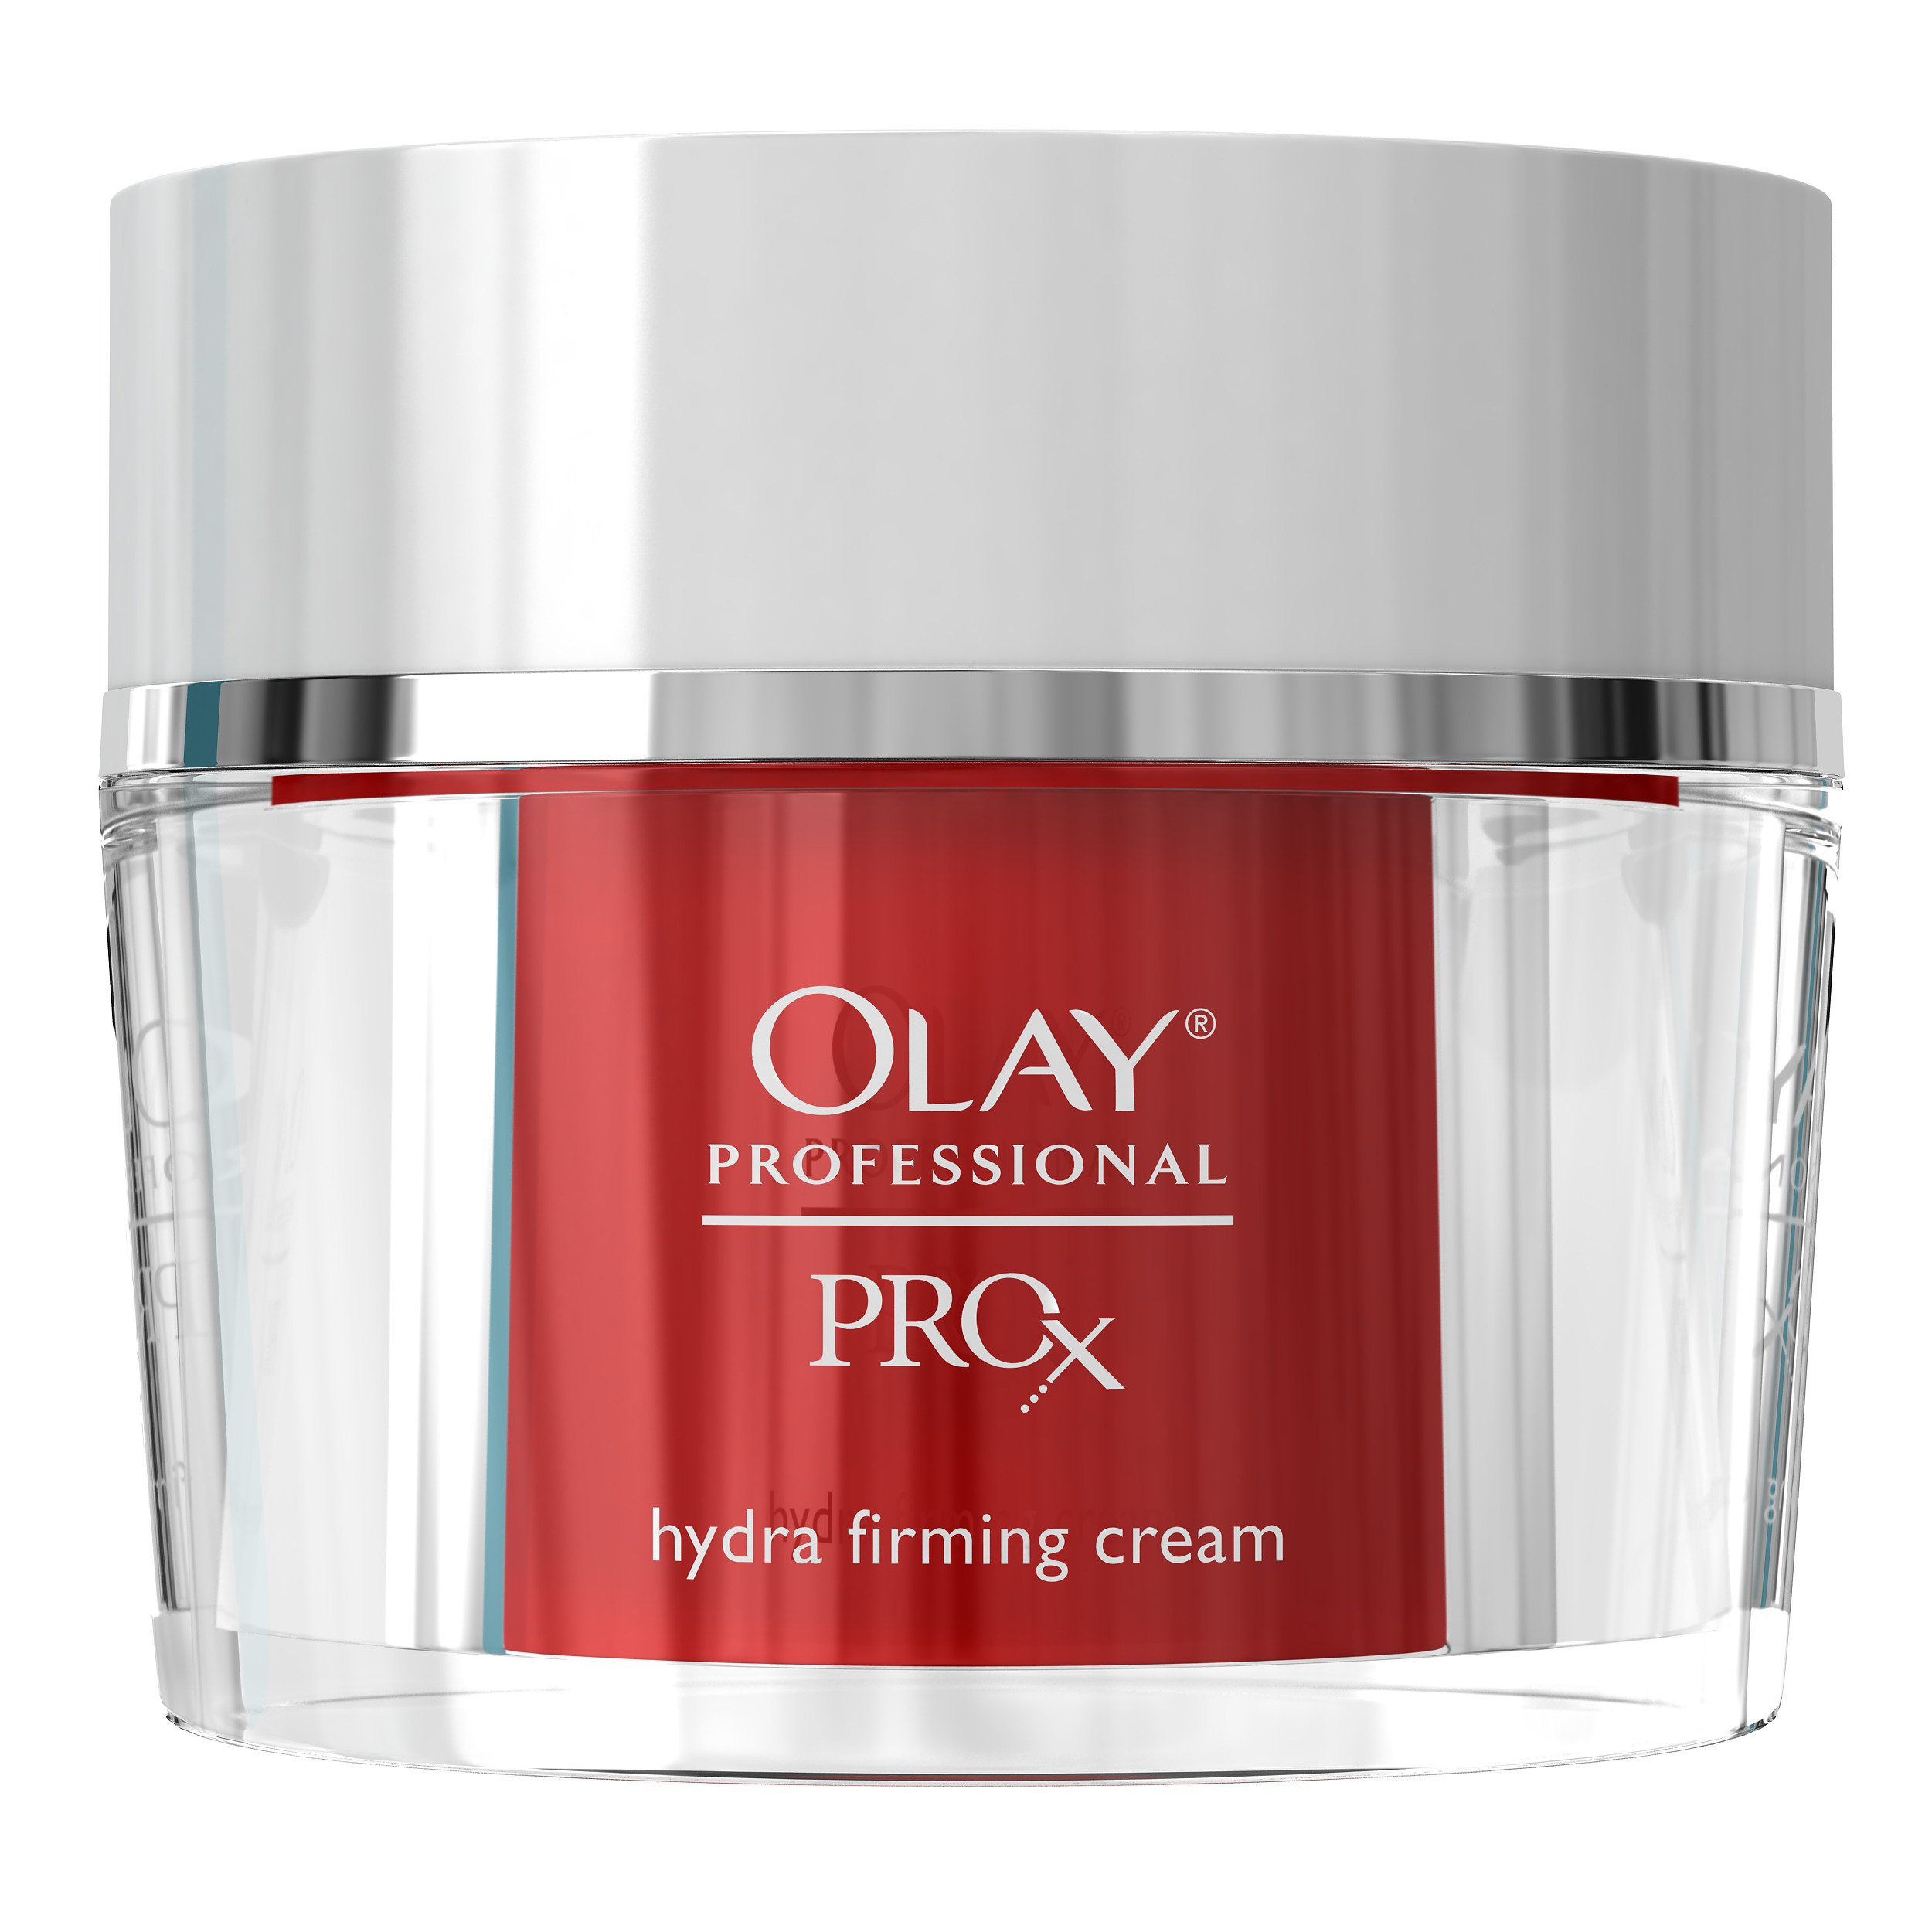 Olay Professional ProX Hydra Firming Cream Anti Aging, 1.7 Oz Packaging may Vary